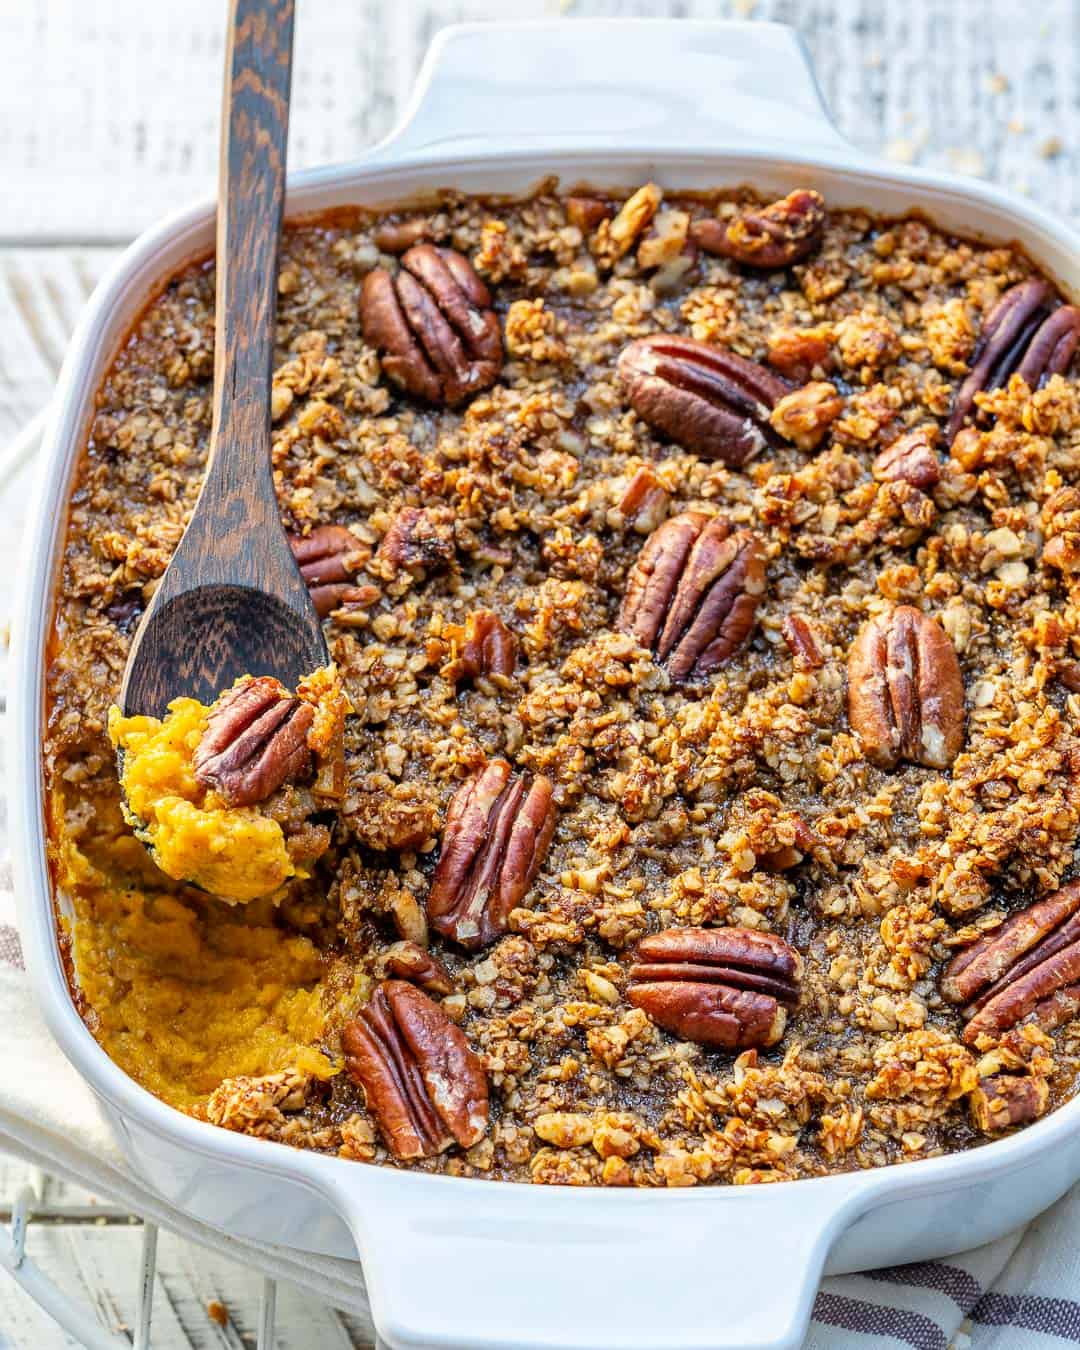 Healthy and Scrumptious Butternut Squash Casserole Recipe Topped with Toasty Pecan Crust | www.healthyfitnessmeals.com | Casserole Recipe | Butternut squash Recipe | Healthy Casserole Recipe | #Healthycasserole #healthyrecipe #butternutsquash